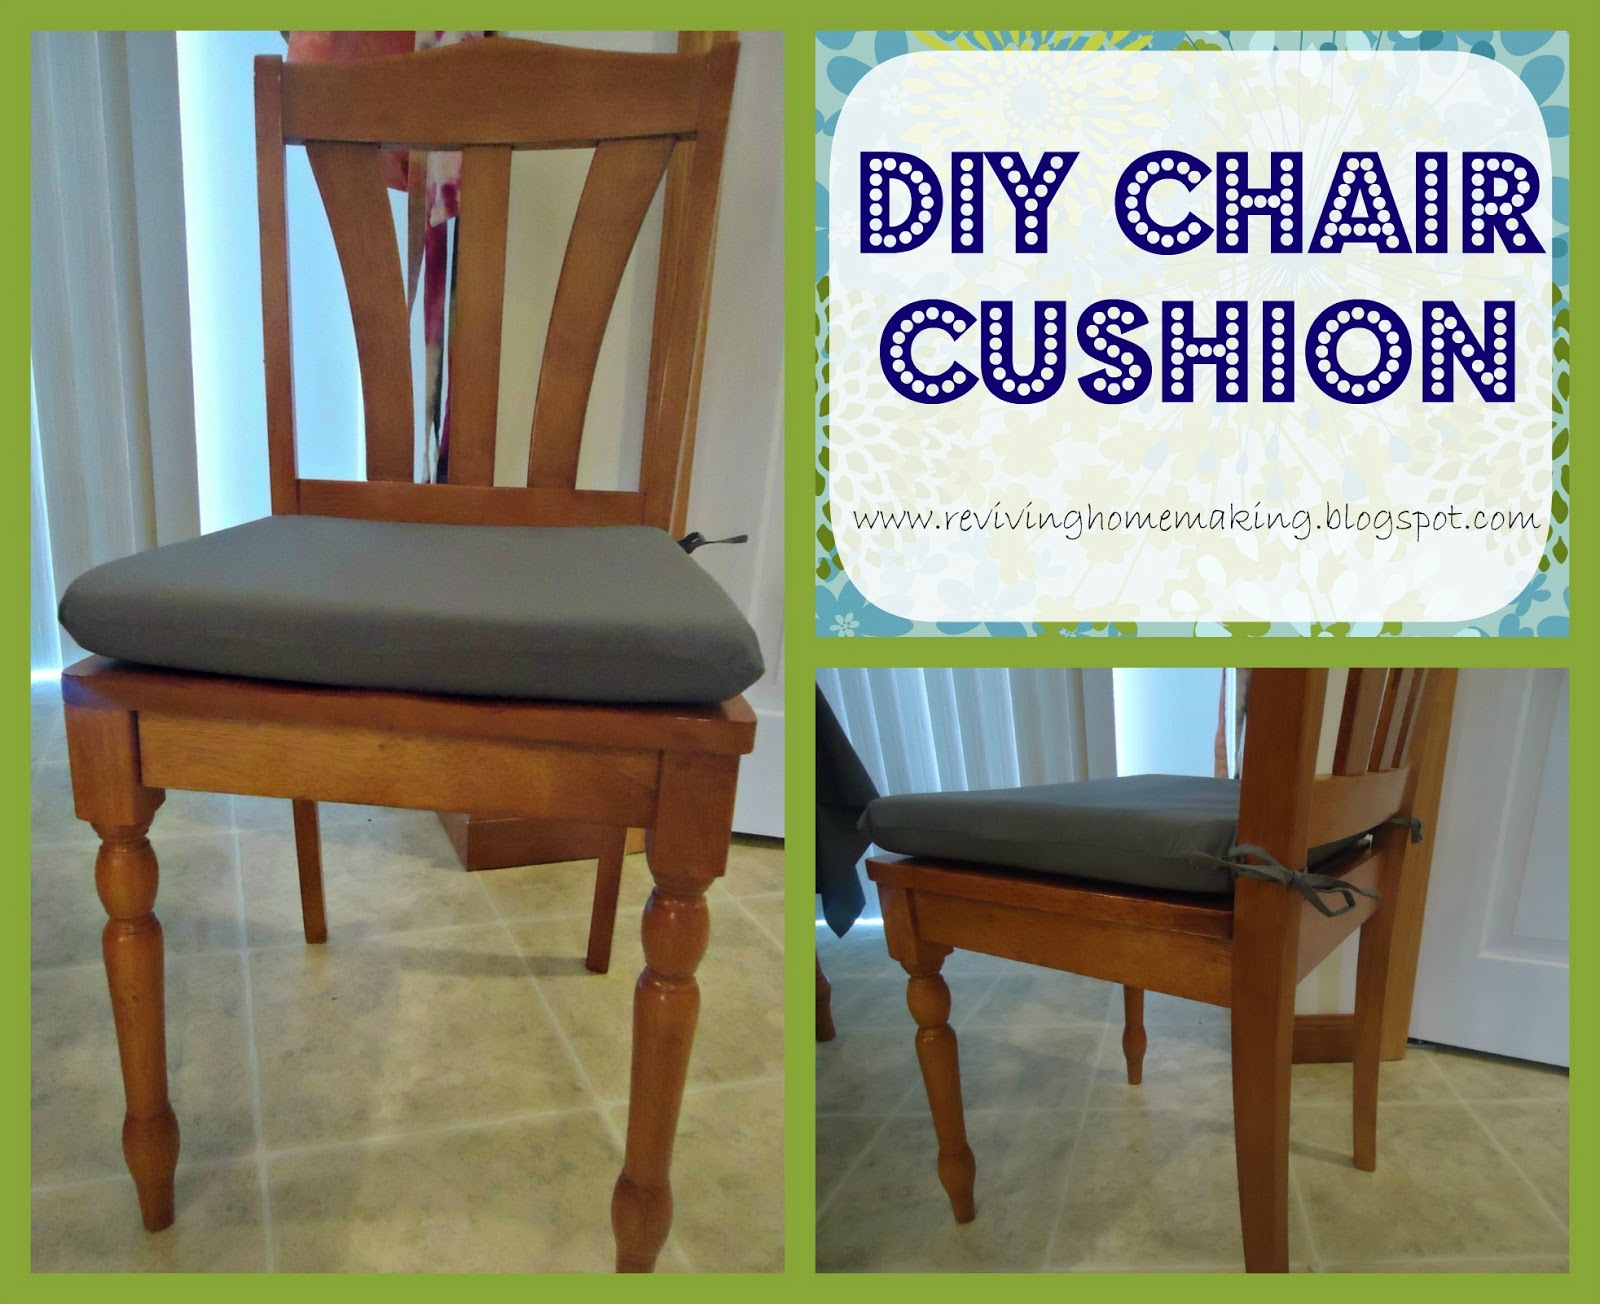 Reviving homemaking diy chair cushion for Dining room chair cushions